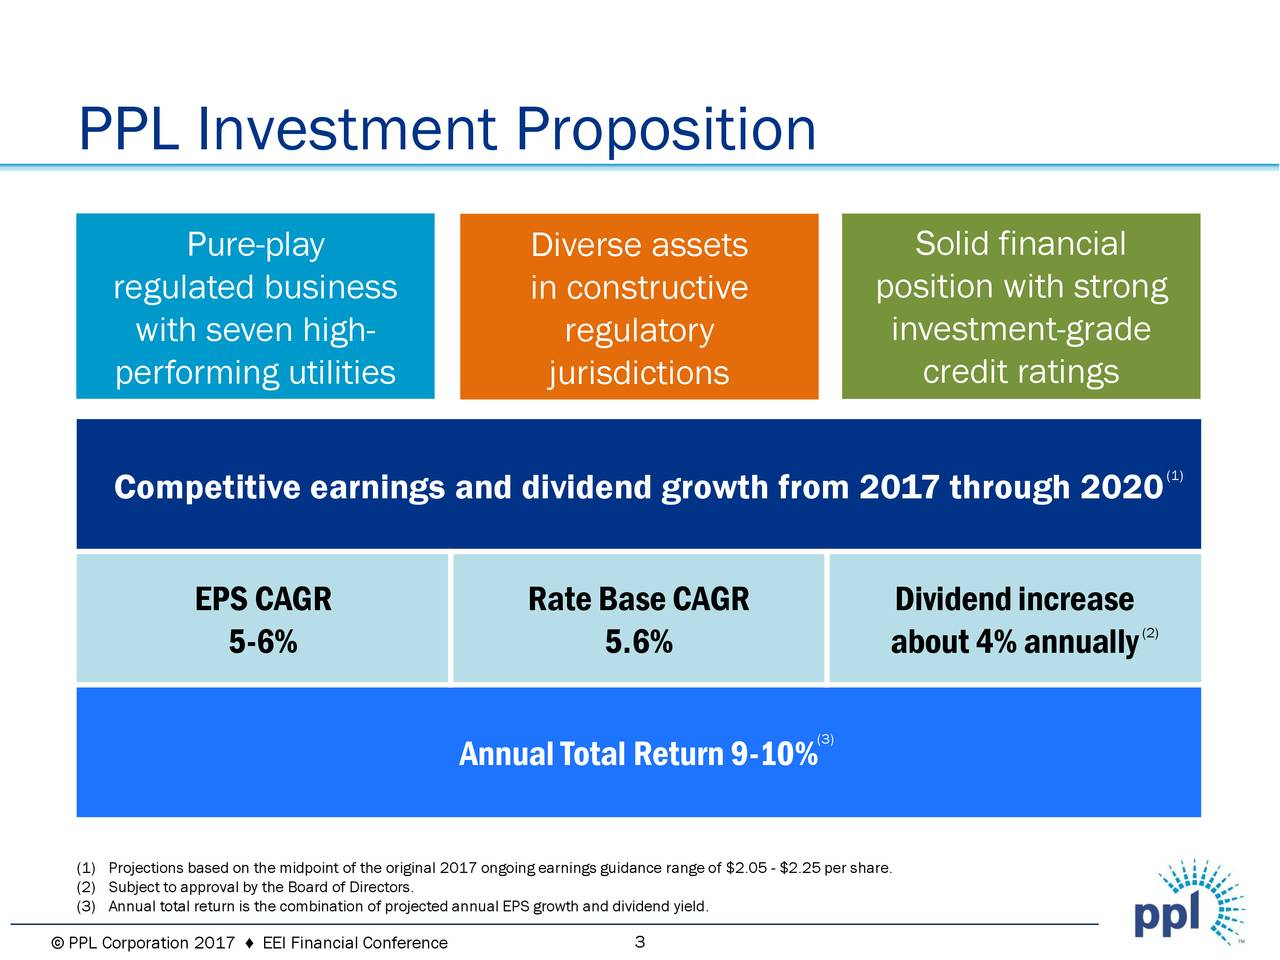 Pure-play Diverse assets Solid financial regulated business in constructive position with strong with seven high- regulatory investment-grade performing utilities jurisdictions credit ratings Competitive earnings and dividend growth from 2017 through 2020 (1) EPSCAGR RateBaseCAGR Dividendincrease 5-6% 5.6% about4%annually (2) (3) AnnualTotalReturn9-10% (1) Projections based on the midpoint of the original 2017 ongoing earnings guidance range of $2.05 - $2.25 per share. (3) Annual total return is the combination of projected annual EPS growth and dividend yield.